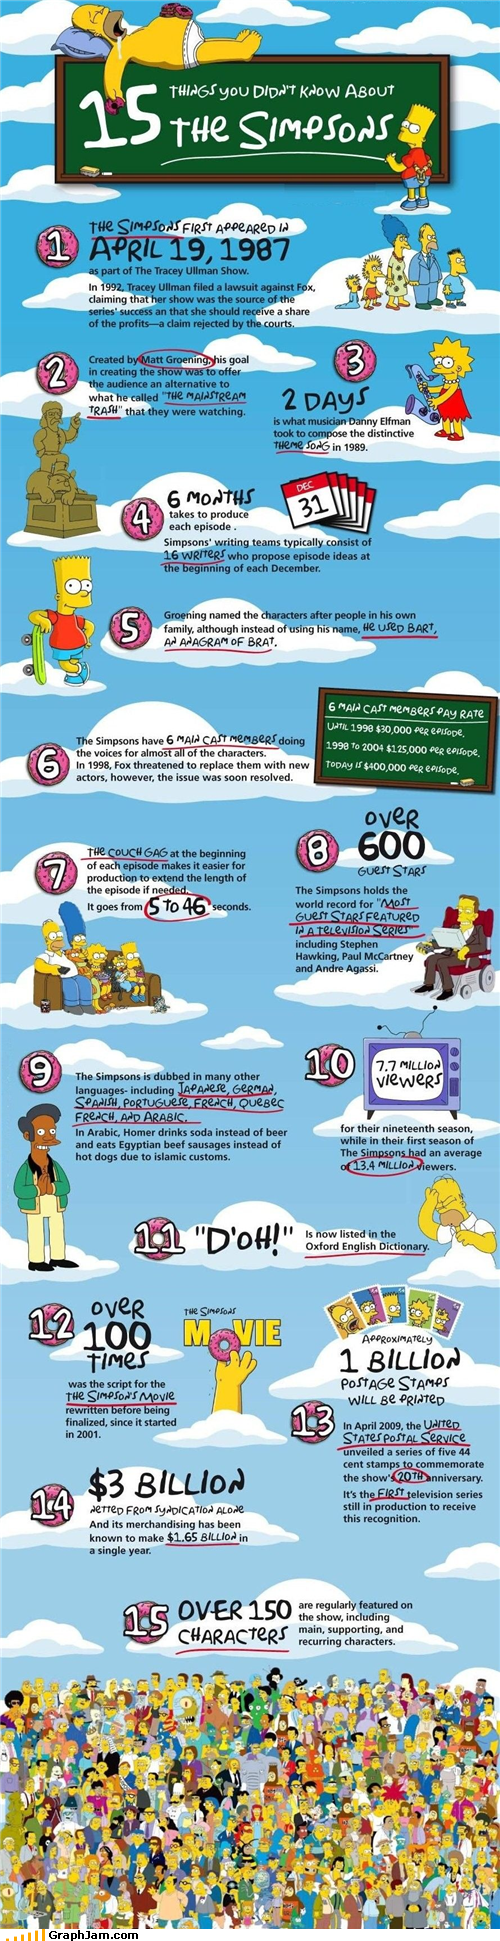 facts,infographic,movies,simpson,television